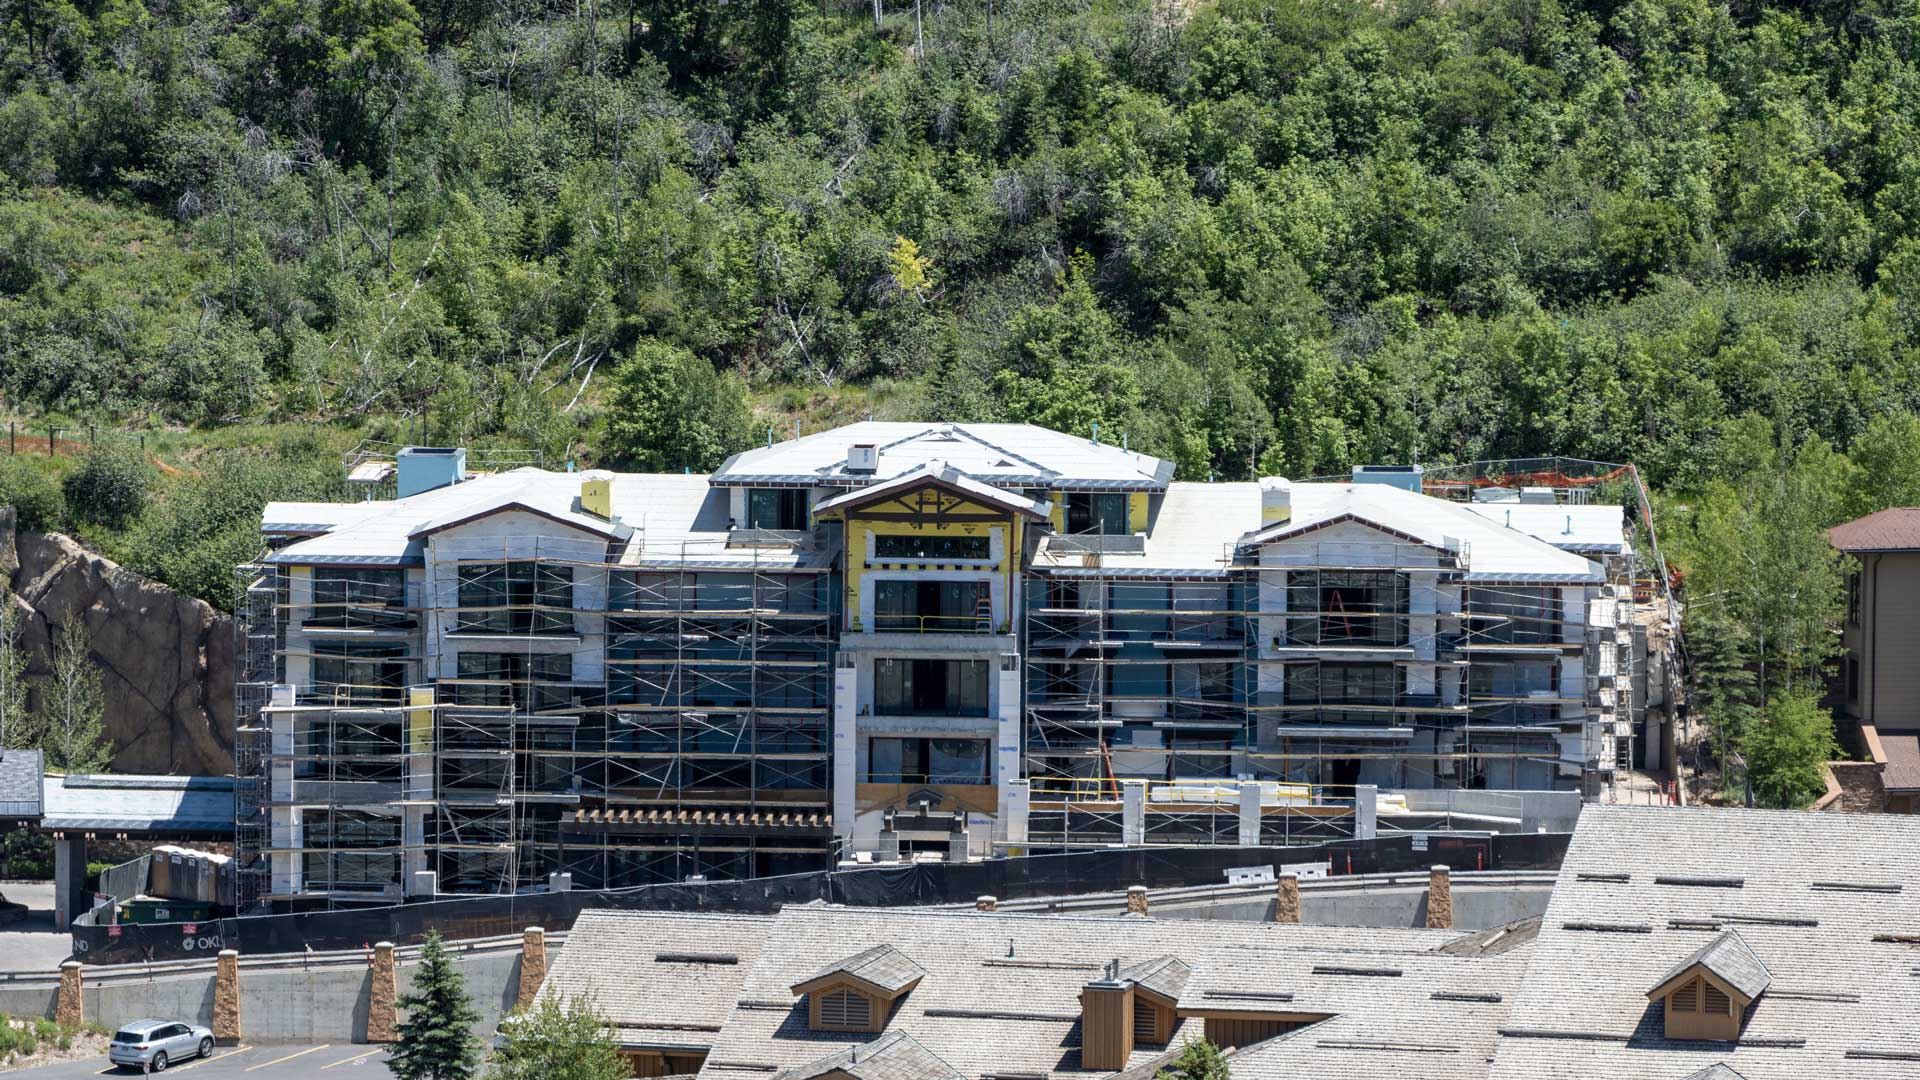 The Residences at The St. Regis Deer Valley | Snow Park - June 7, 2020 Construction Update by Eric Schramm